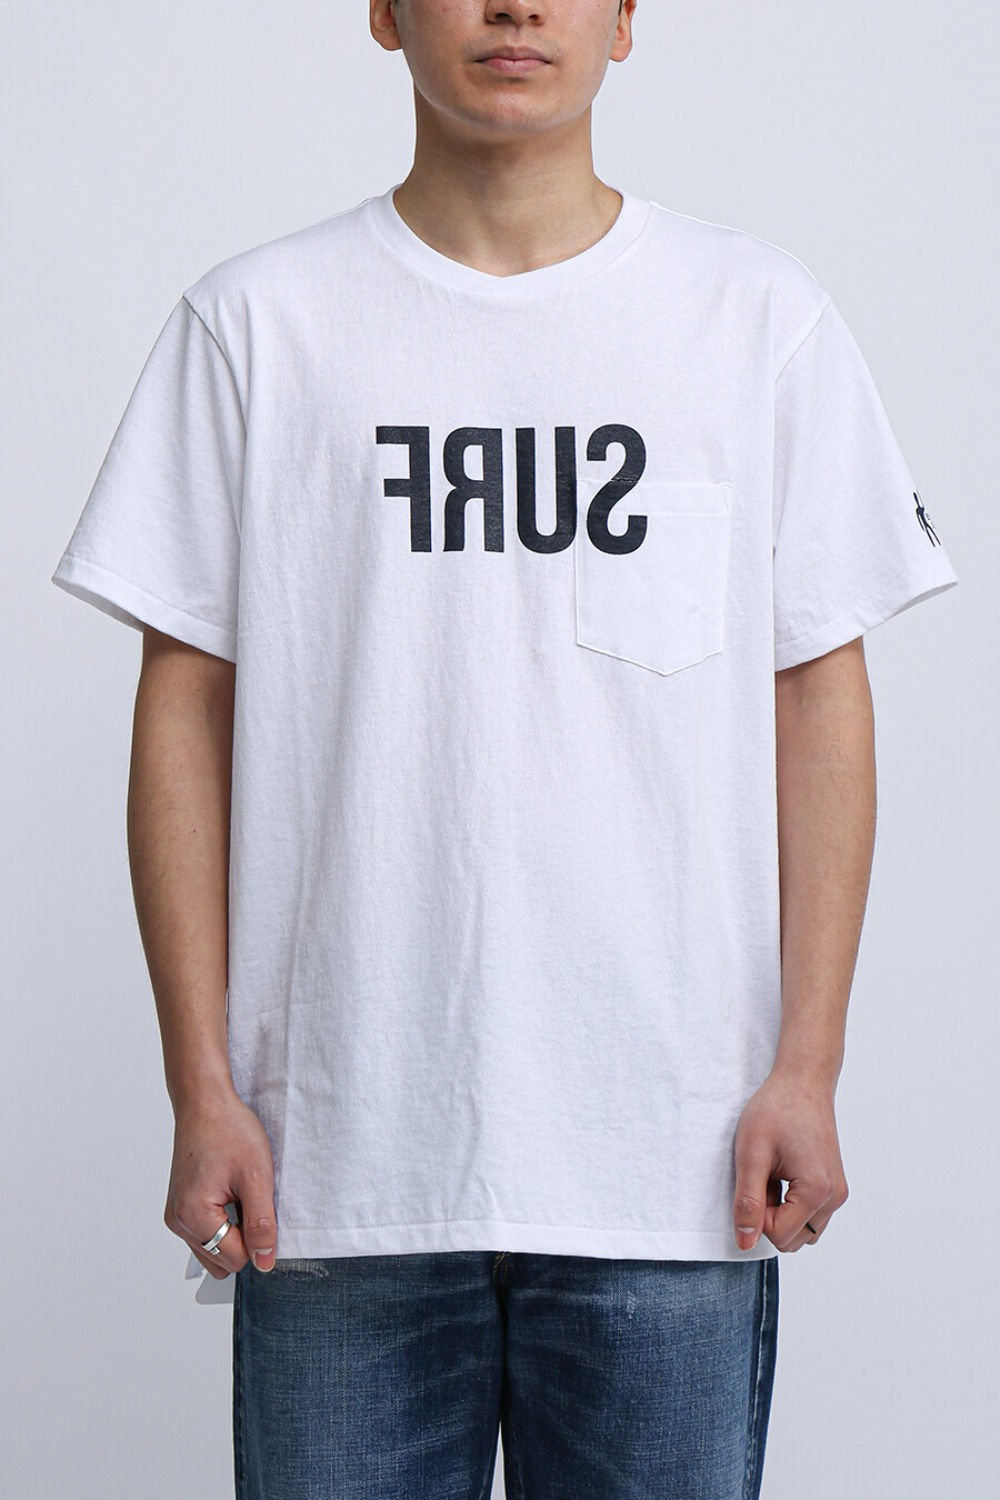 FOR SCULP X PRINTED CROSS CREW NECK T-SHIRT SURF WHITE